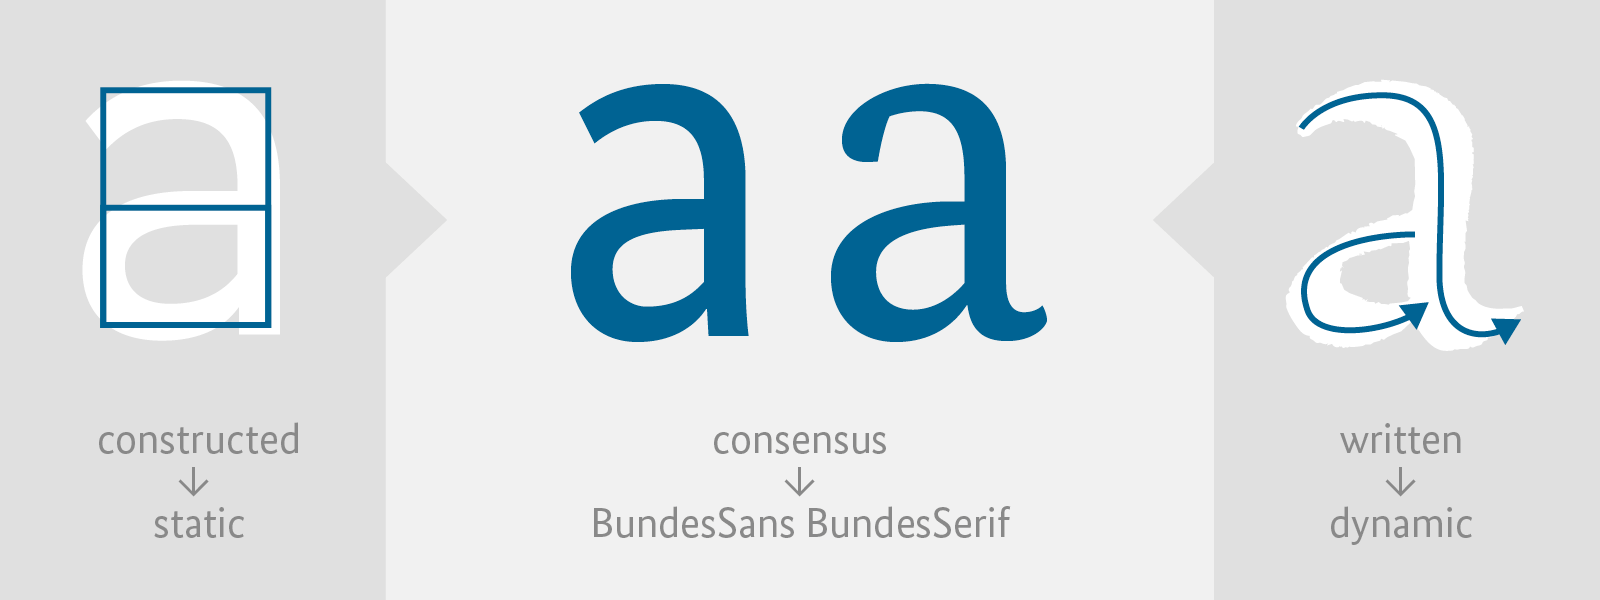 Three years ago MetaDesign Berlin asked us to design a custom Serif and Sans typeface for the German federal government. They had been assigned to redevelop the government's corporate design with the typefaces as part of the update. The project was to cover all communication issued by the government and their ministries, online or offline, …